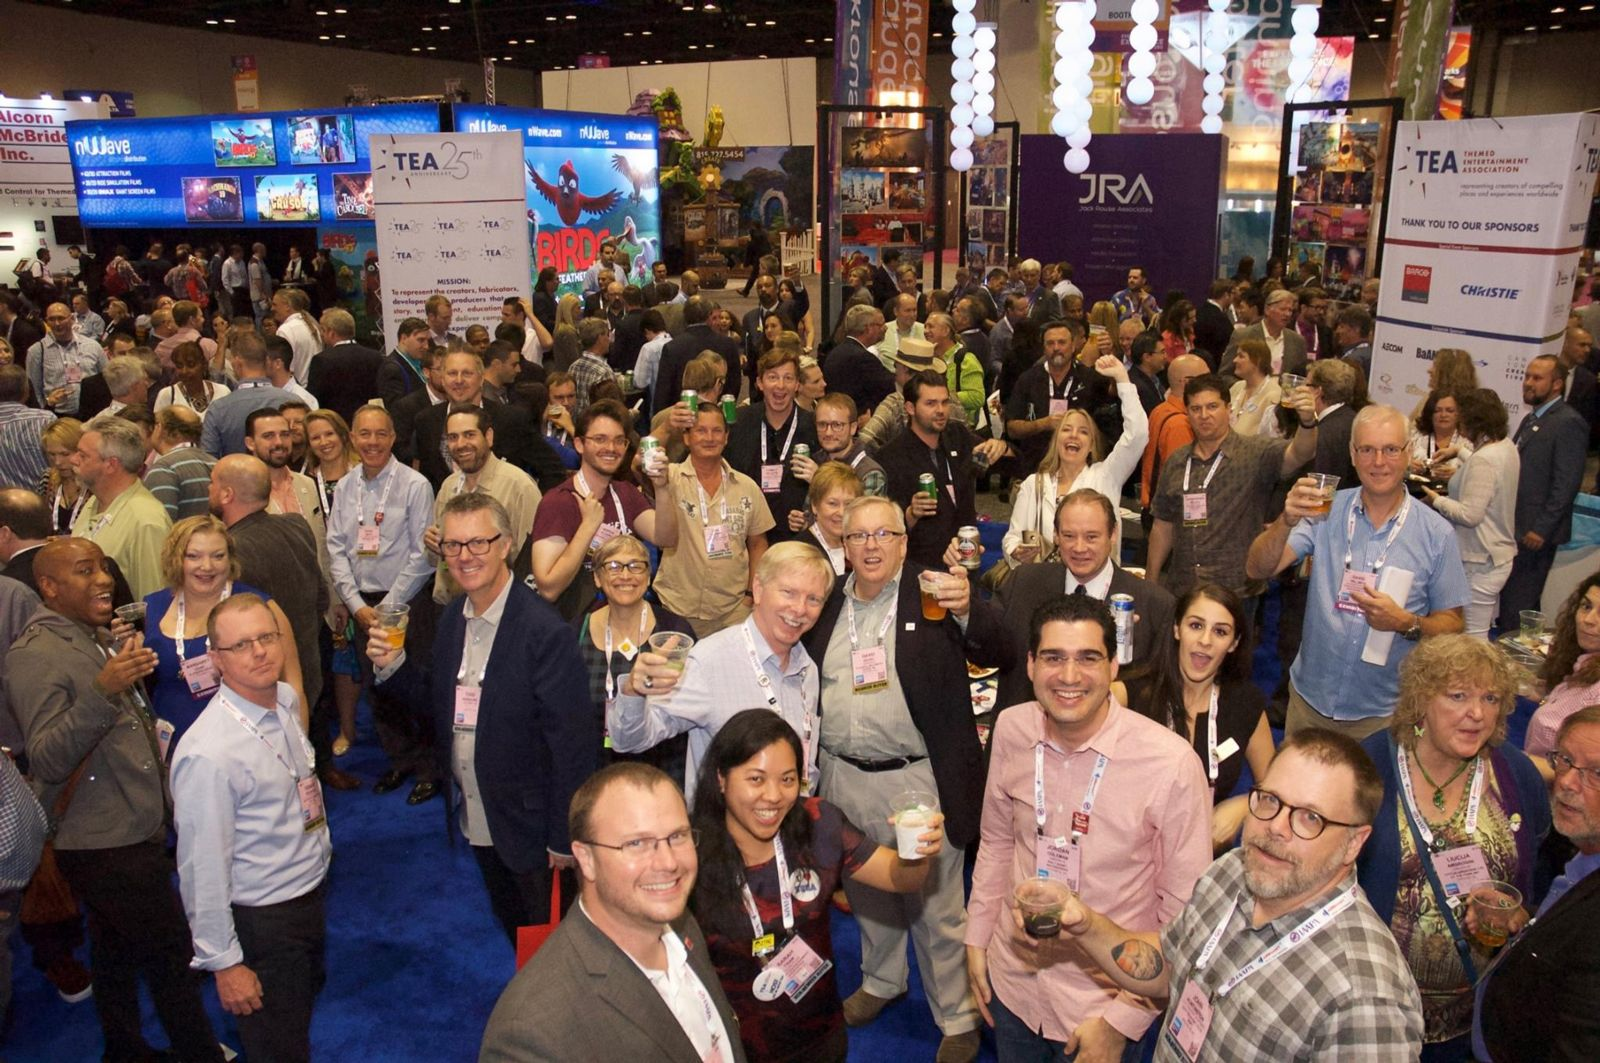 Orlando: TEA at the 2017 IAAPA Attractions Expo - Eight ways to participate!